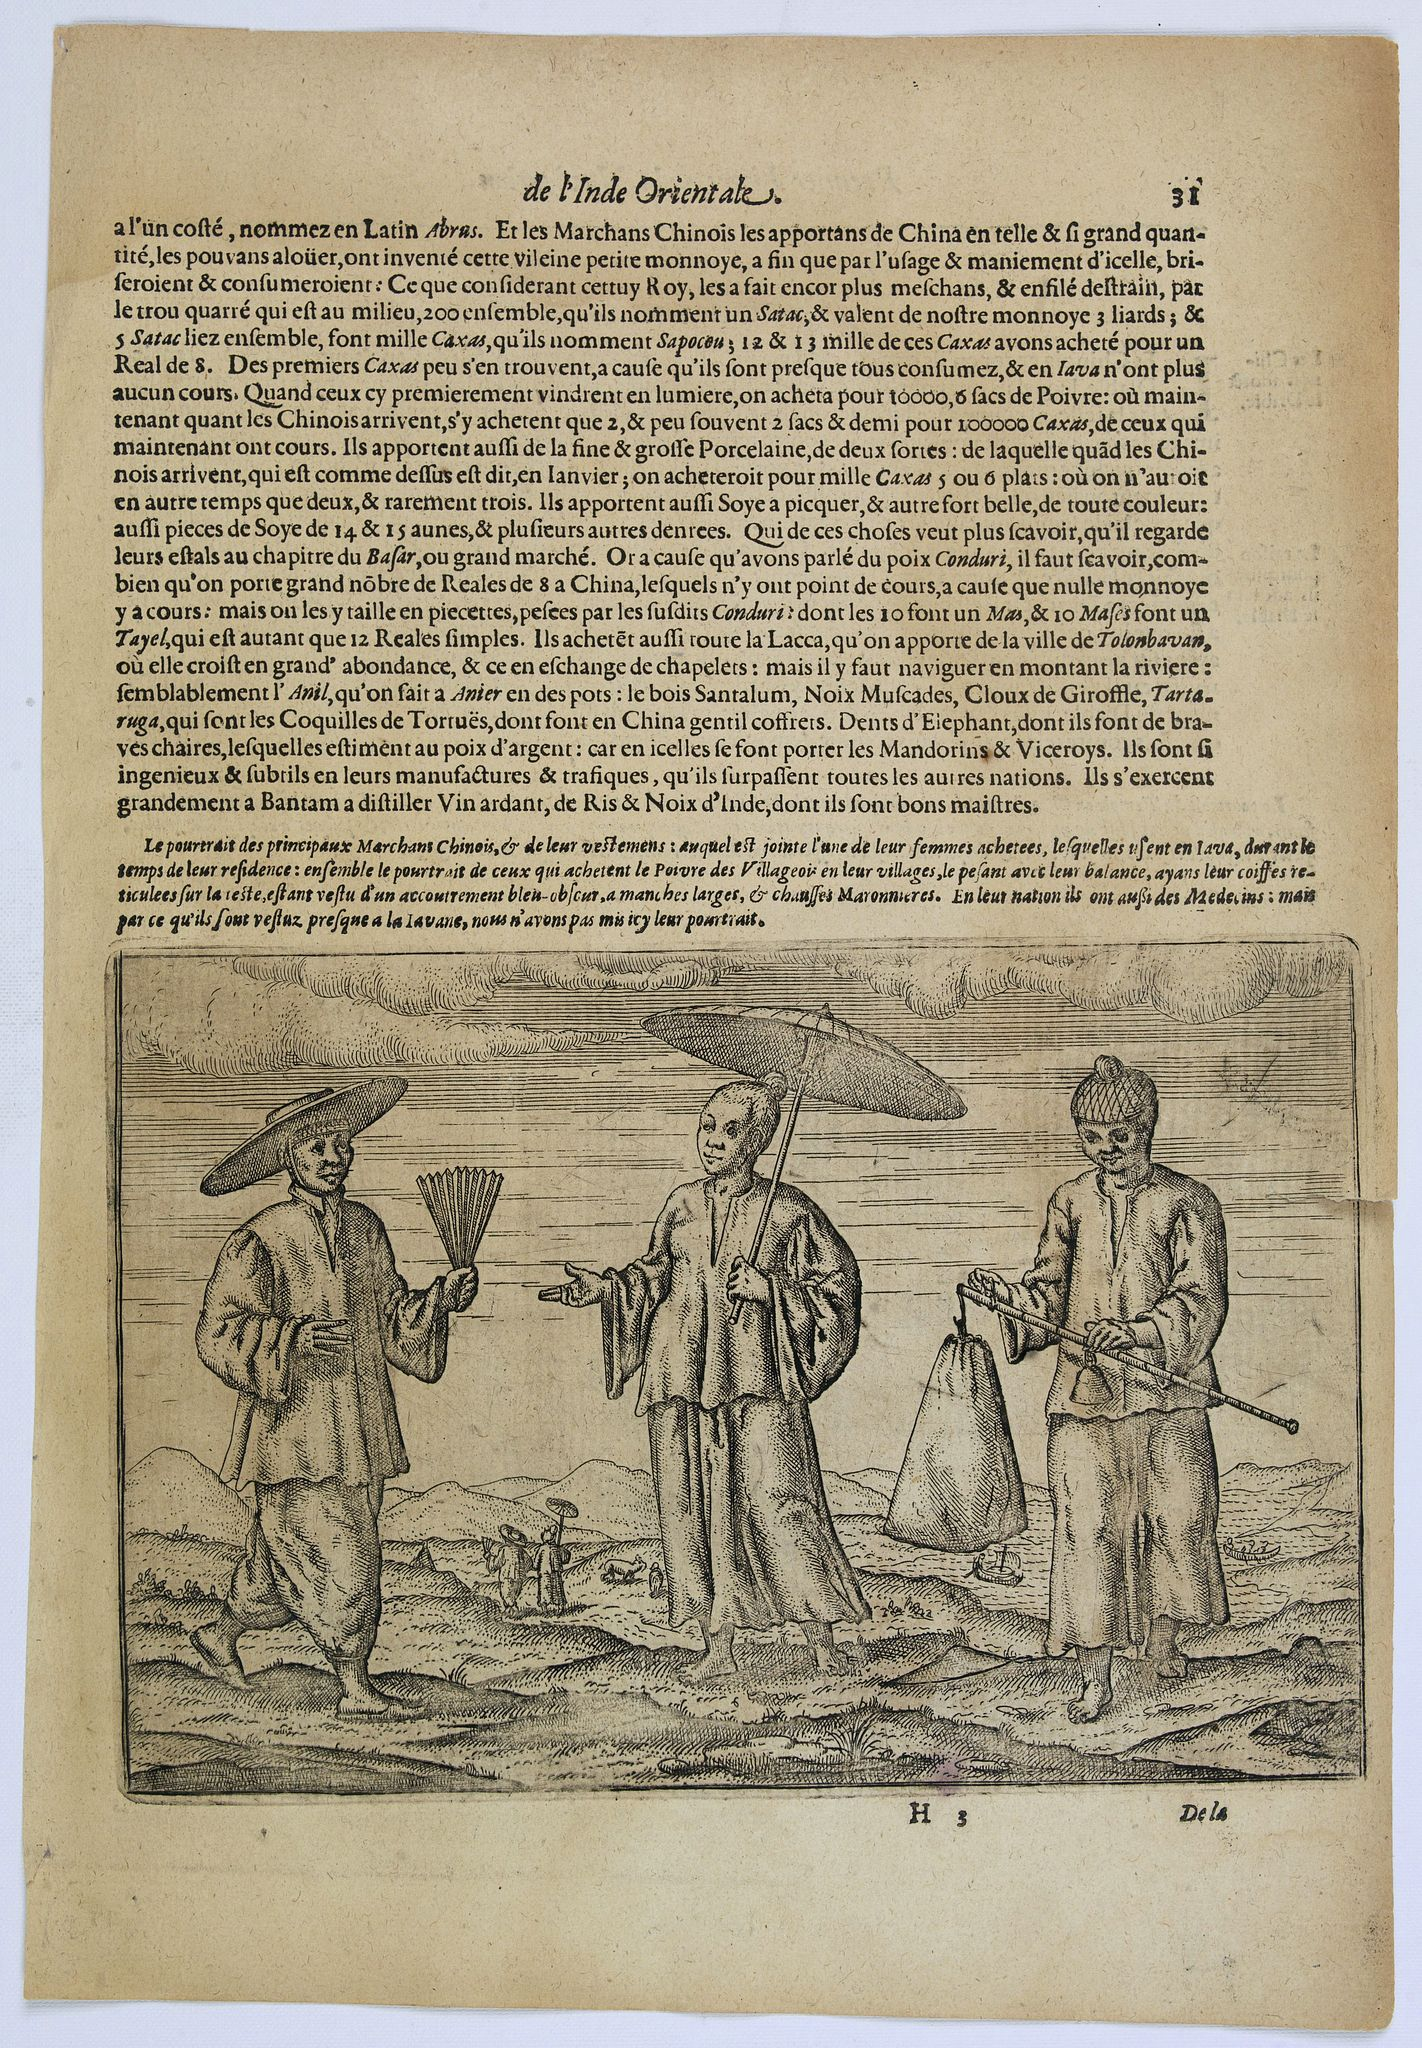 LODEWYCKSZ, Willem,  [Chinese Merchants and temple]., antique map, old maps